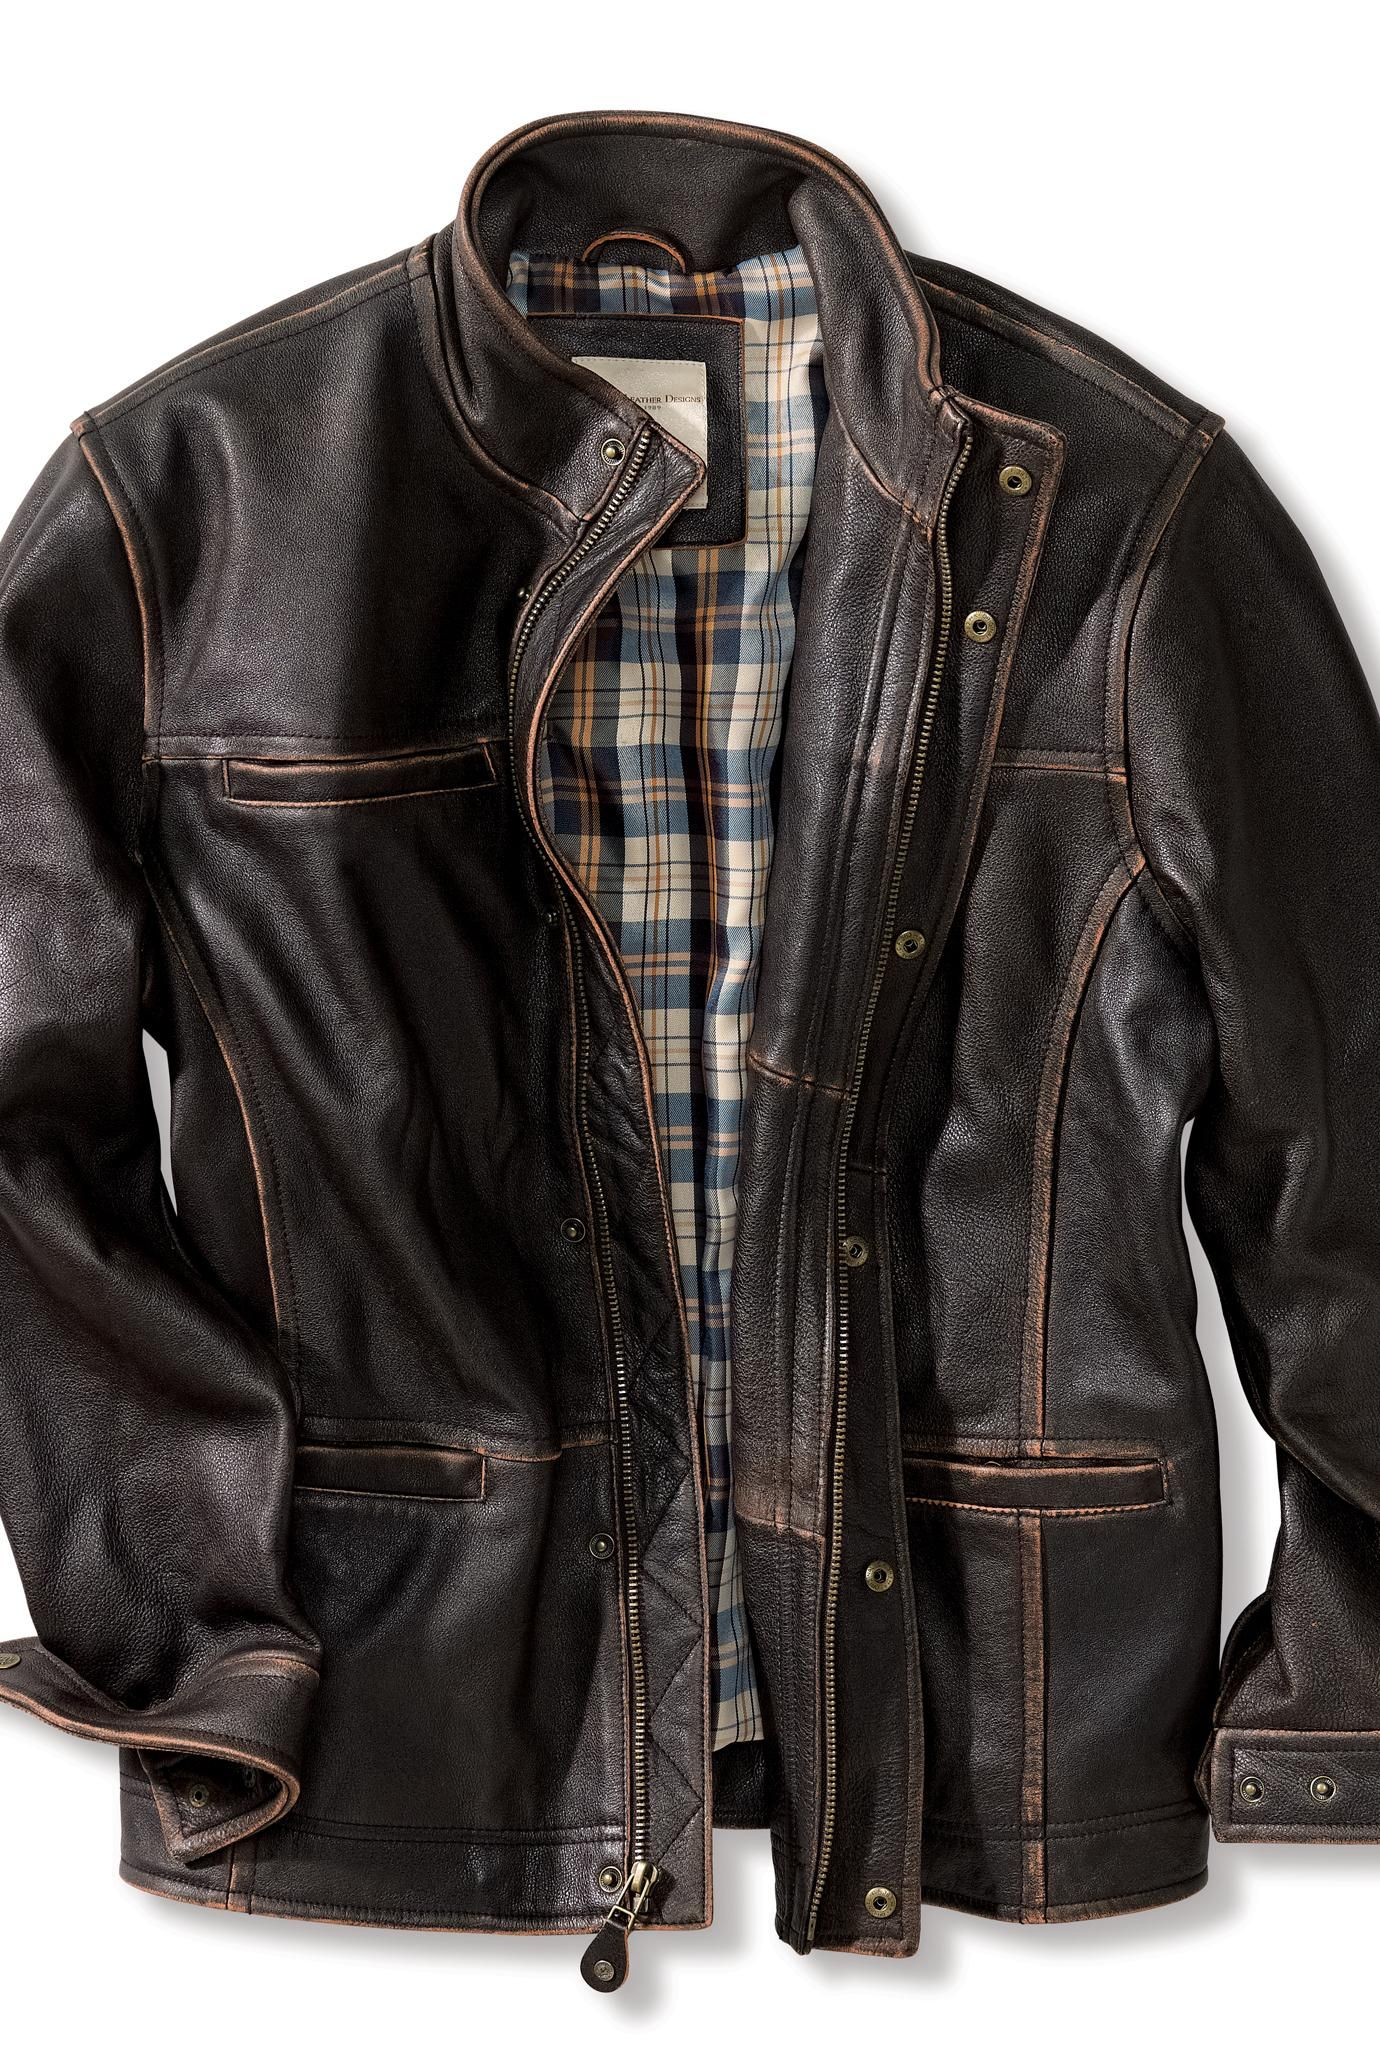 Rugged leather jackets